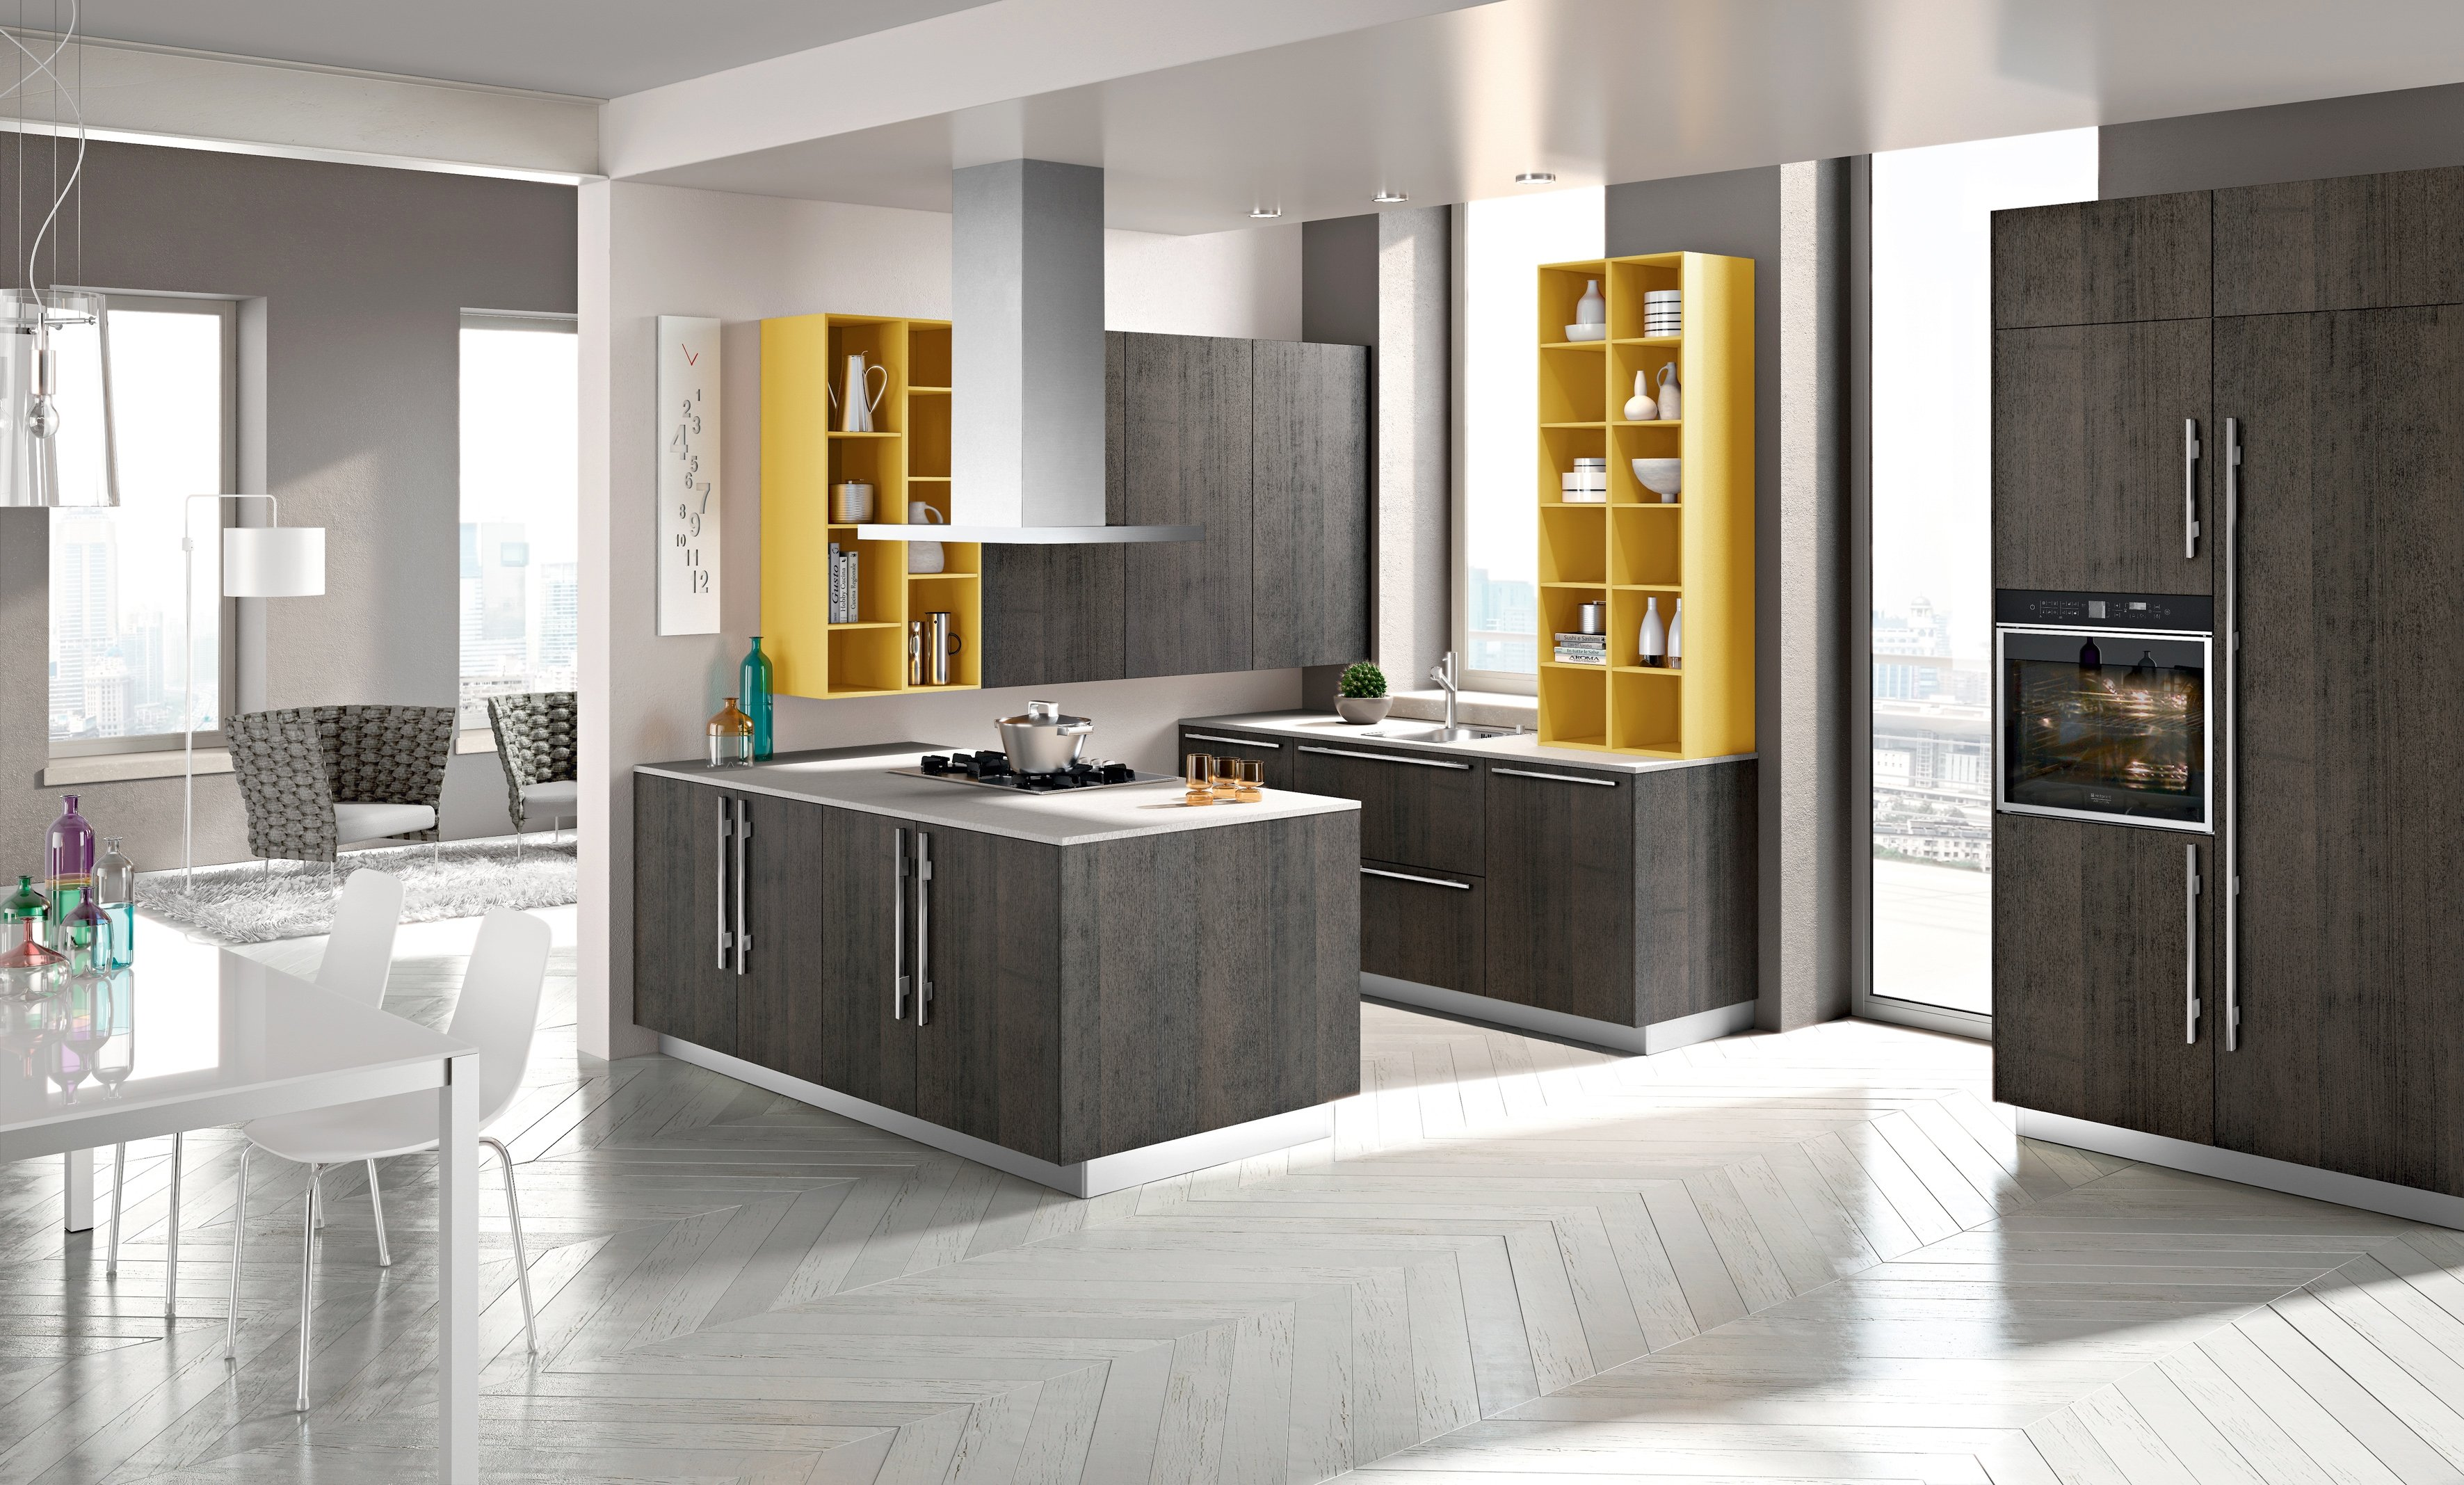 Cucine progetto pi preventivo cose di casa Modern kitchen design trends 2014